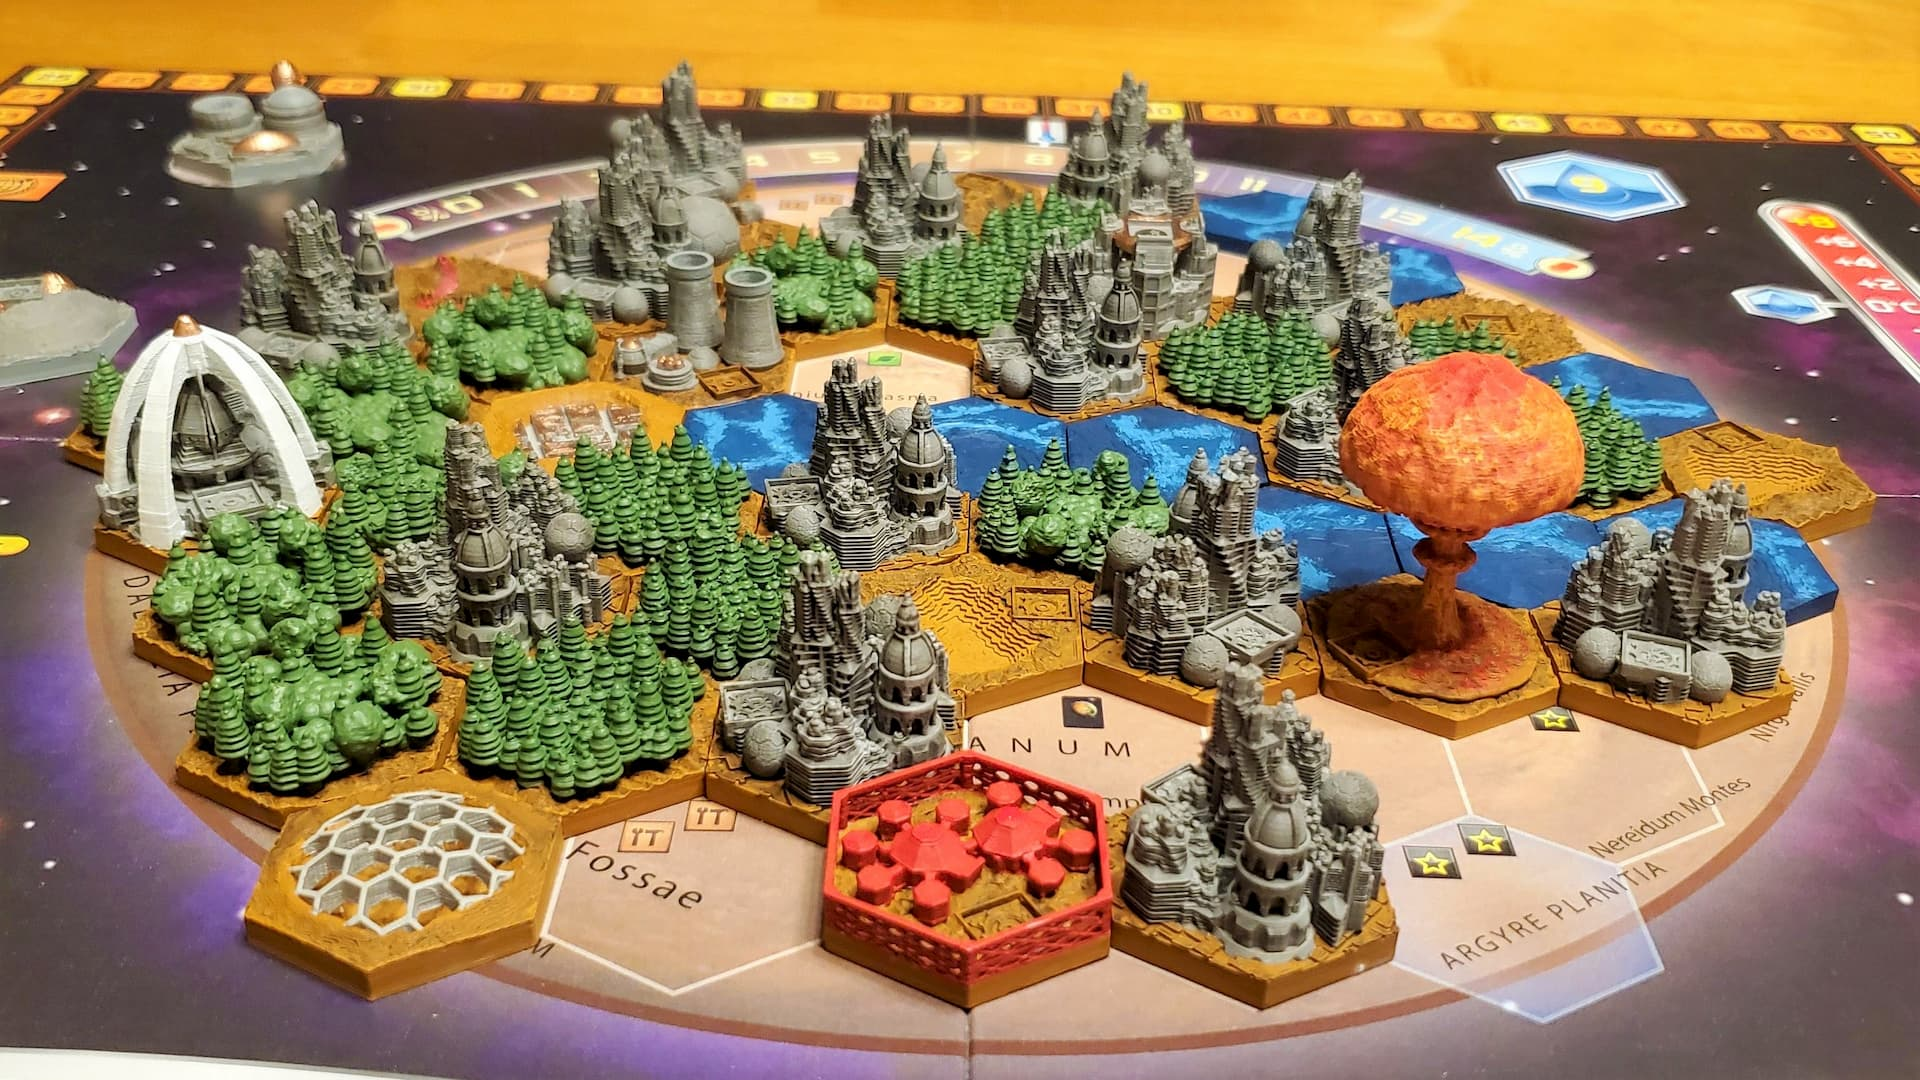 Terraforming Mars 3D Print: 10 Great Game Models | All3DP